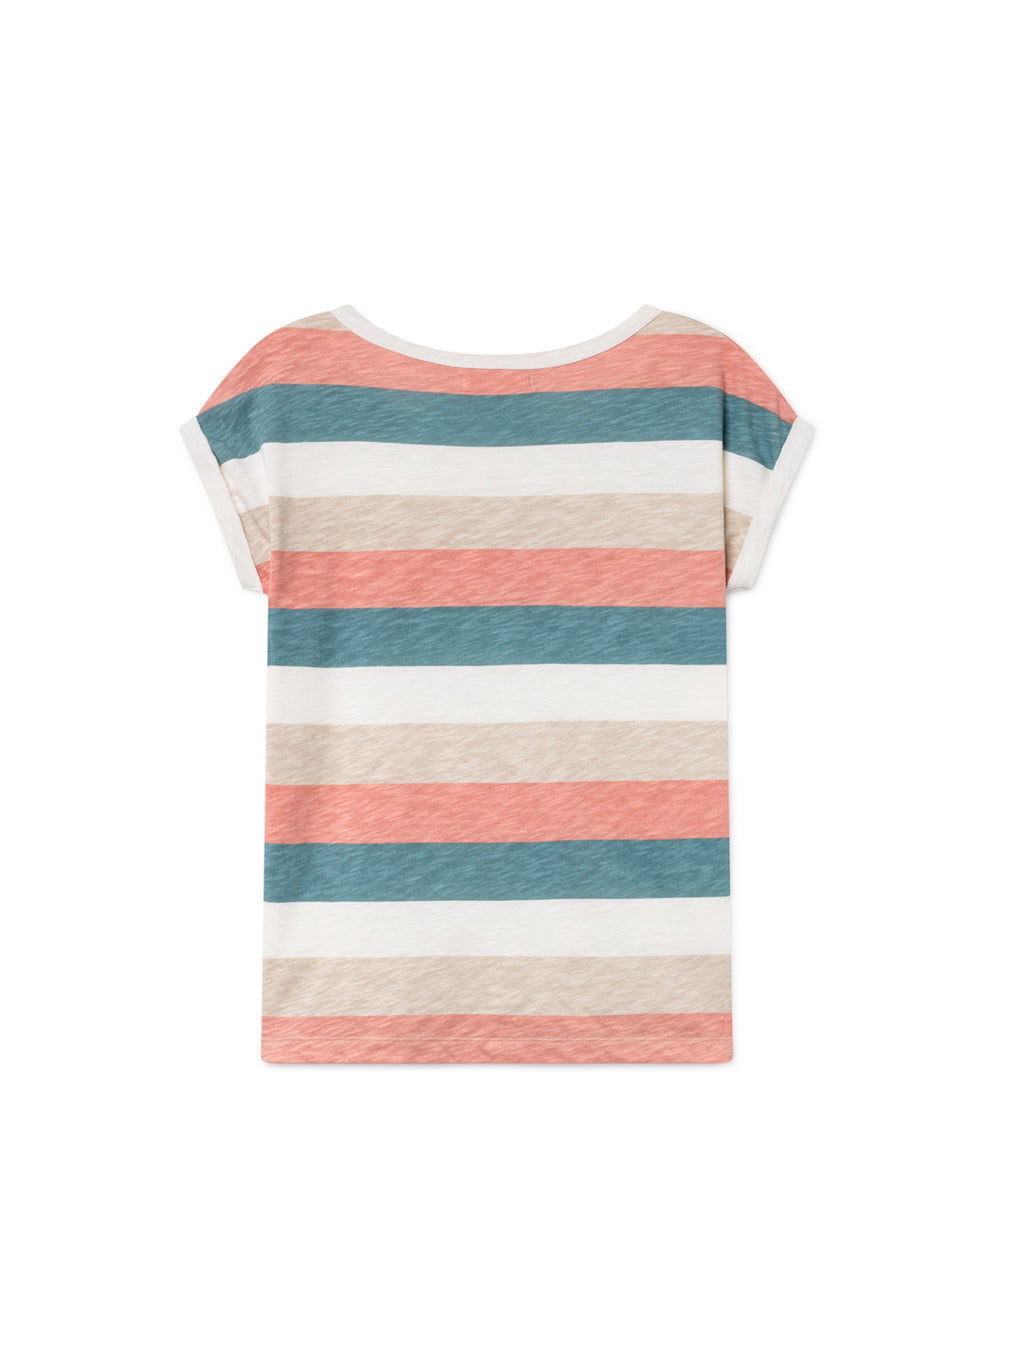 TWOTHIRDS Womens Tee: Gortina - Light back